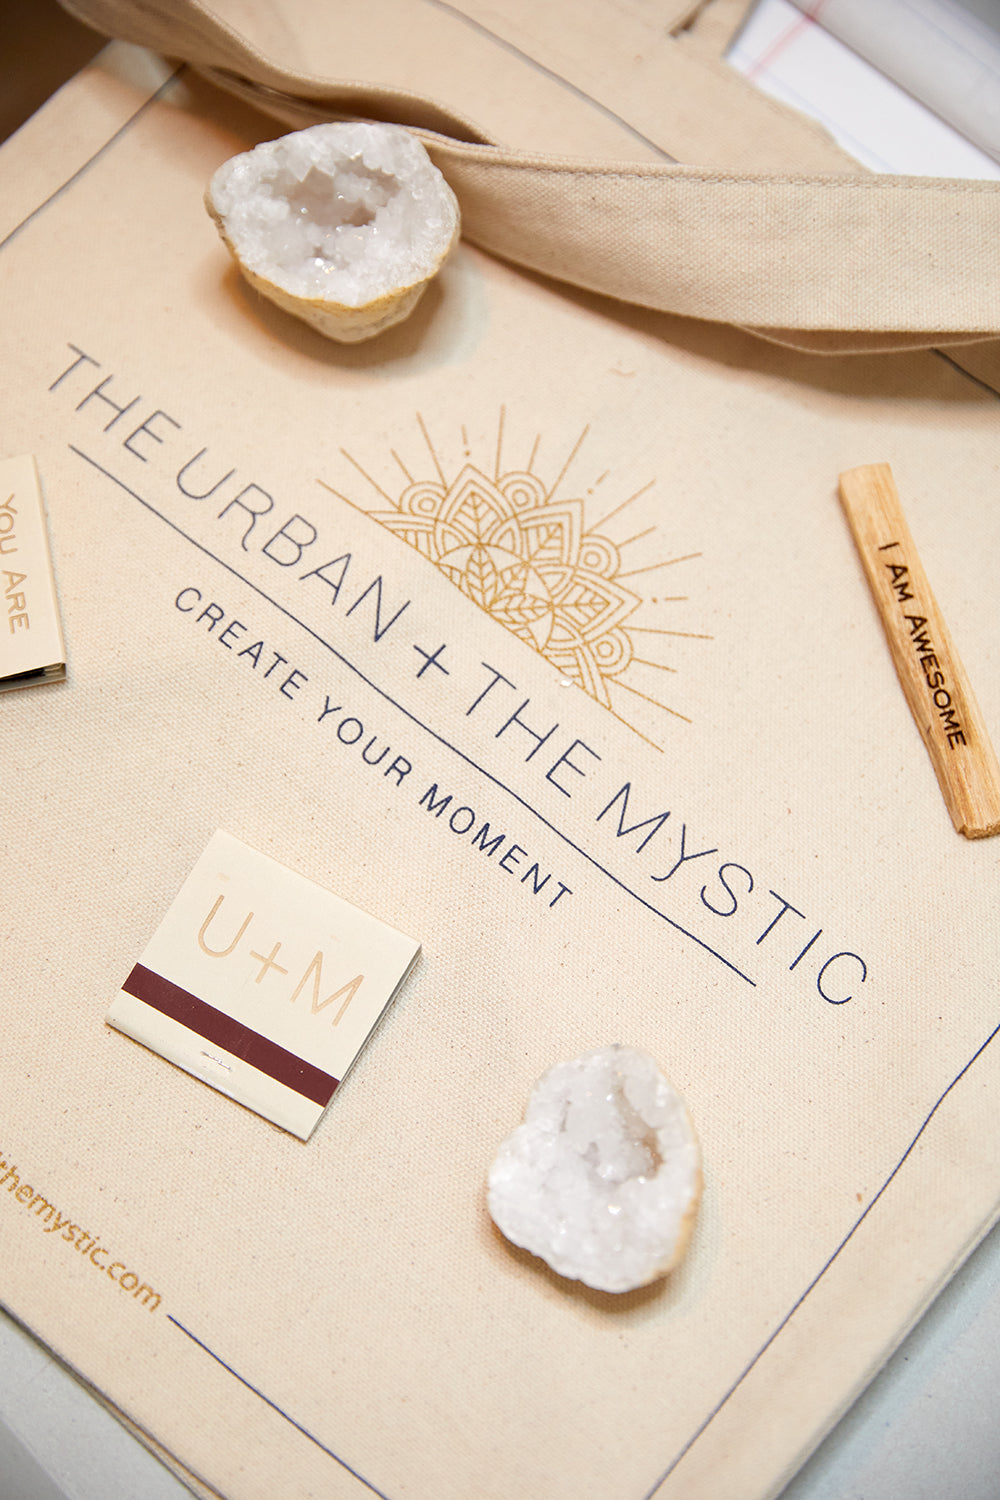 GLCO x The Urban and The Mystic